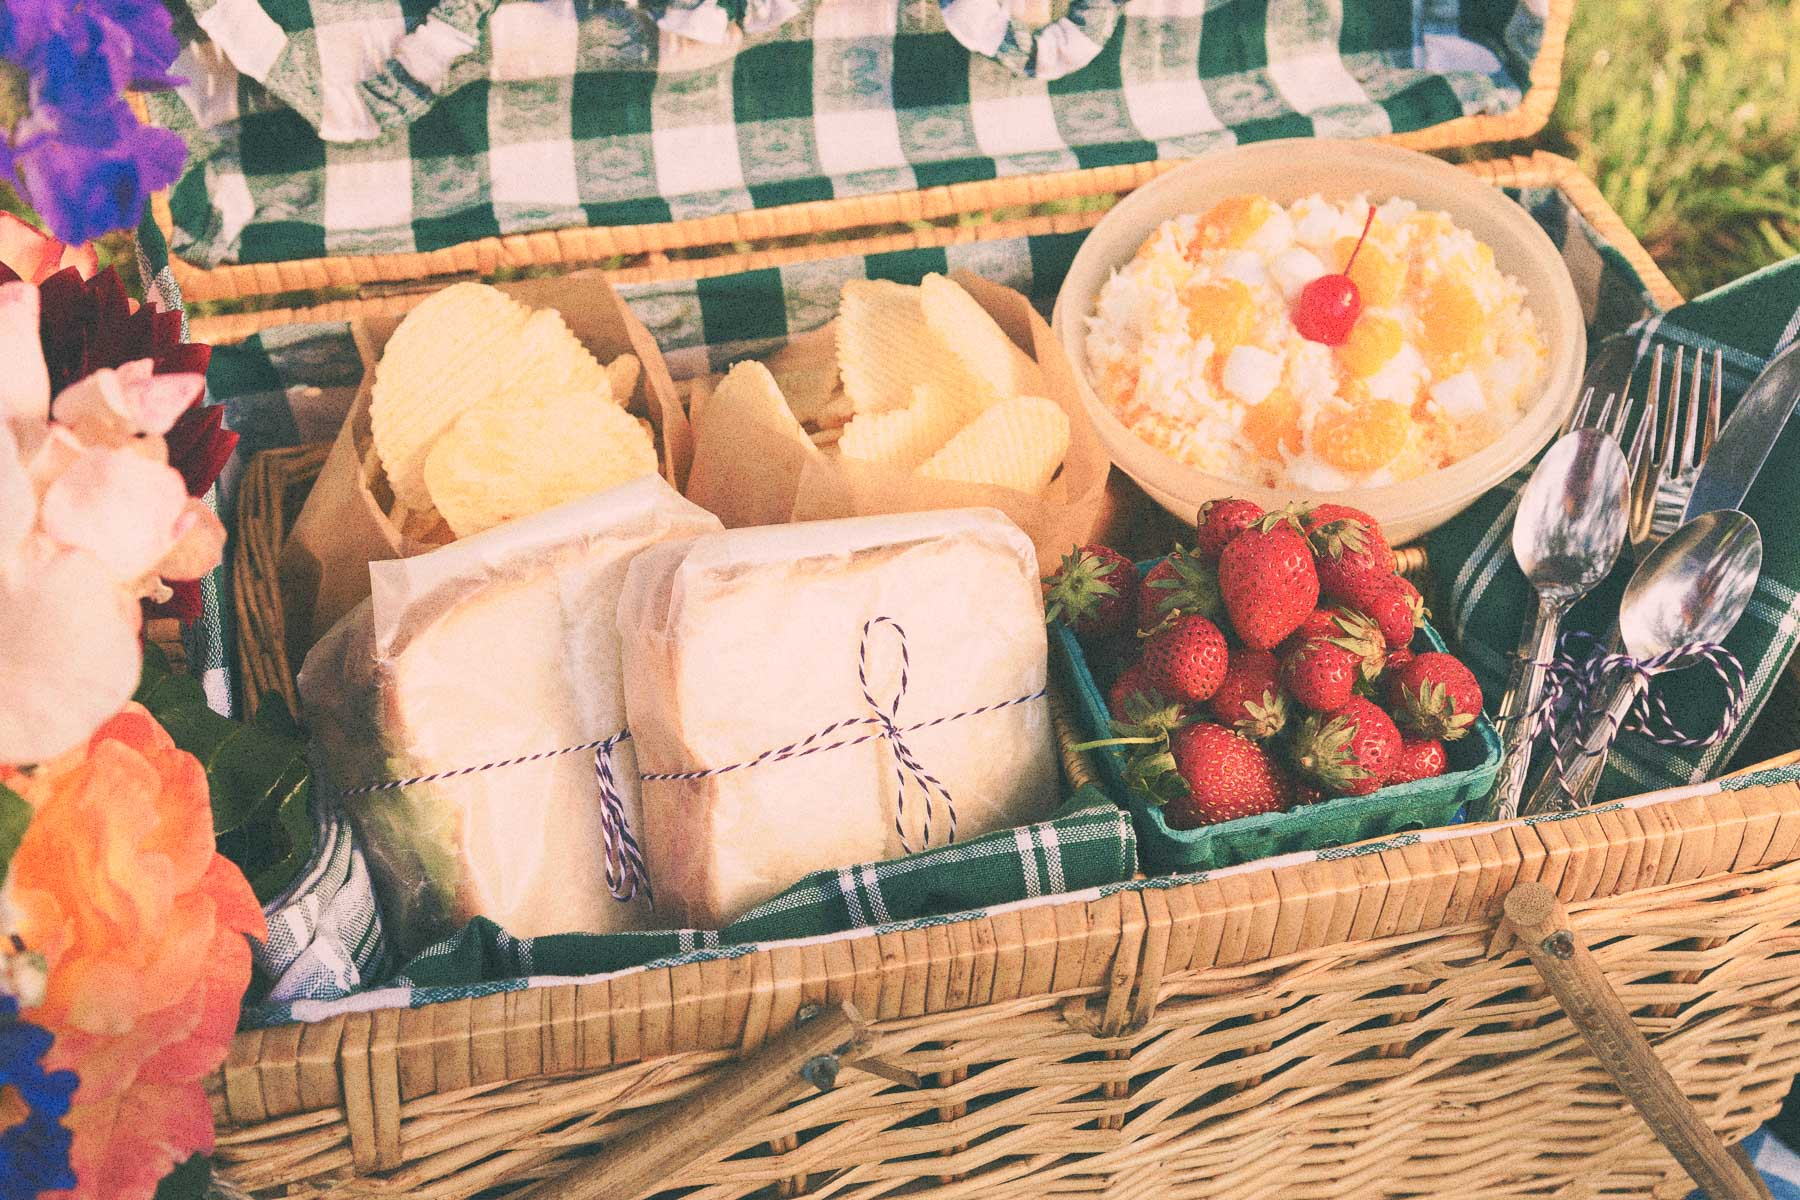 Tomato and Cheese Sandwiches, Ruffles Chips, Ambrosia Salad, and Strawberries to go